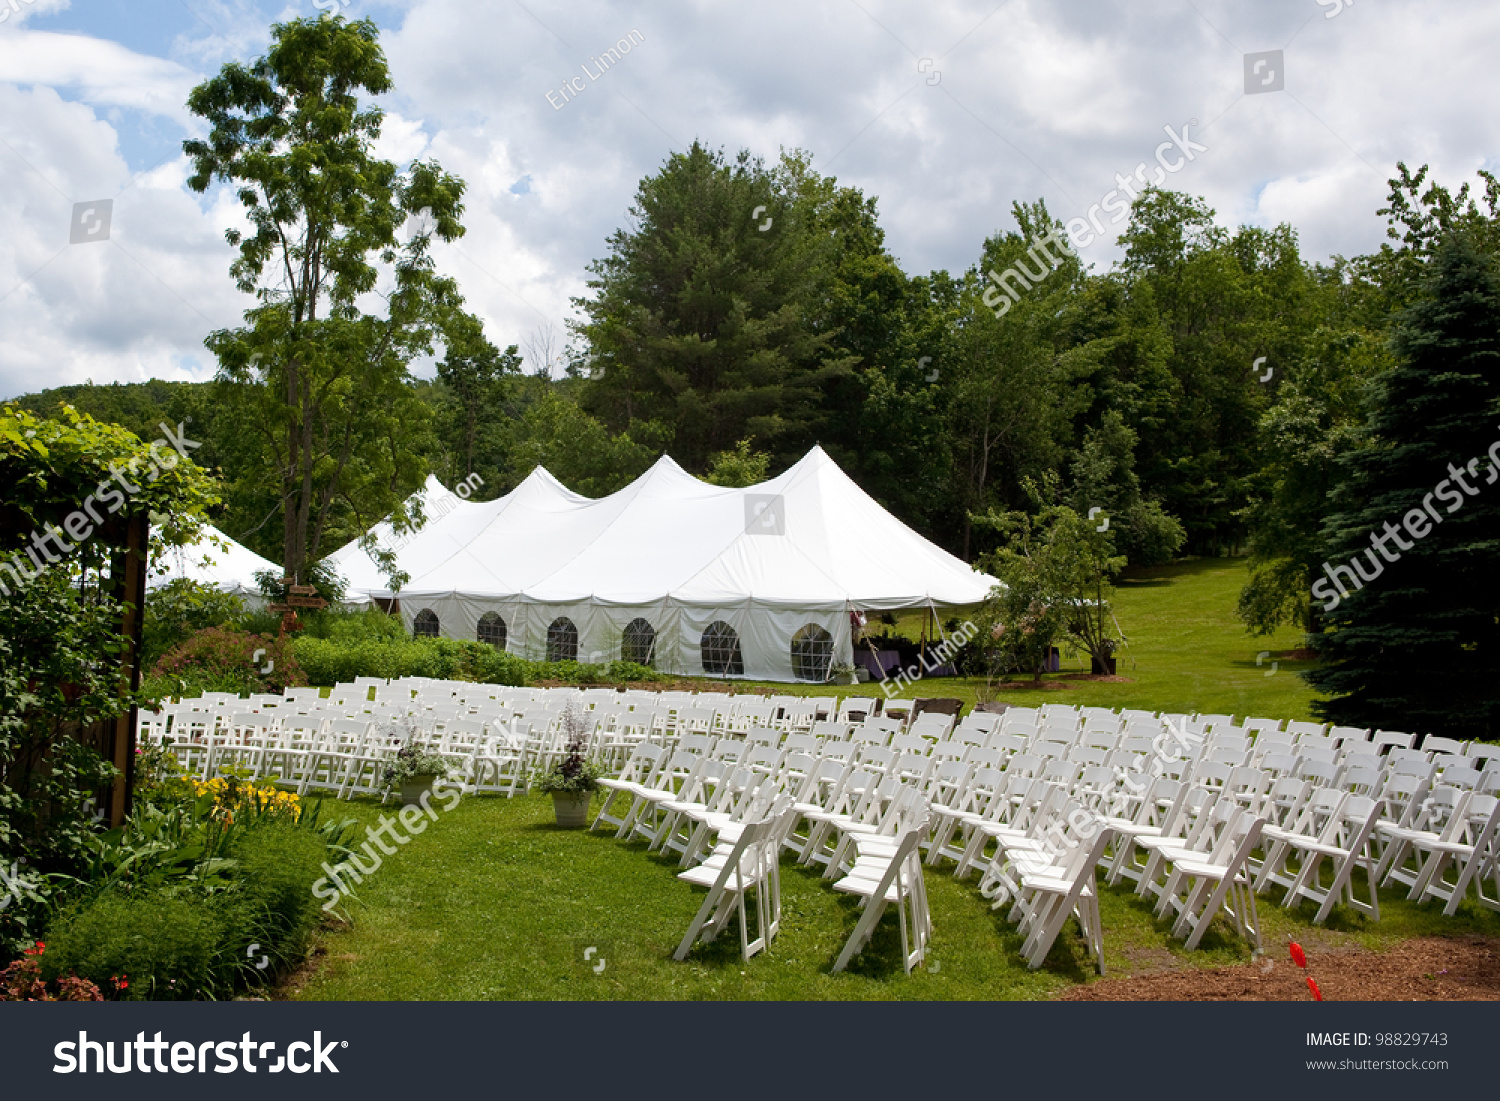 Wood Chairs Outdoor Ceremony: Wedding Tent Set Up For An Outdoor Wedding Or Other Event